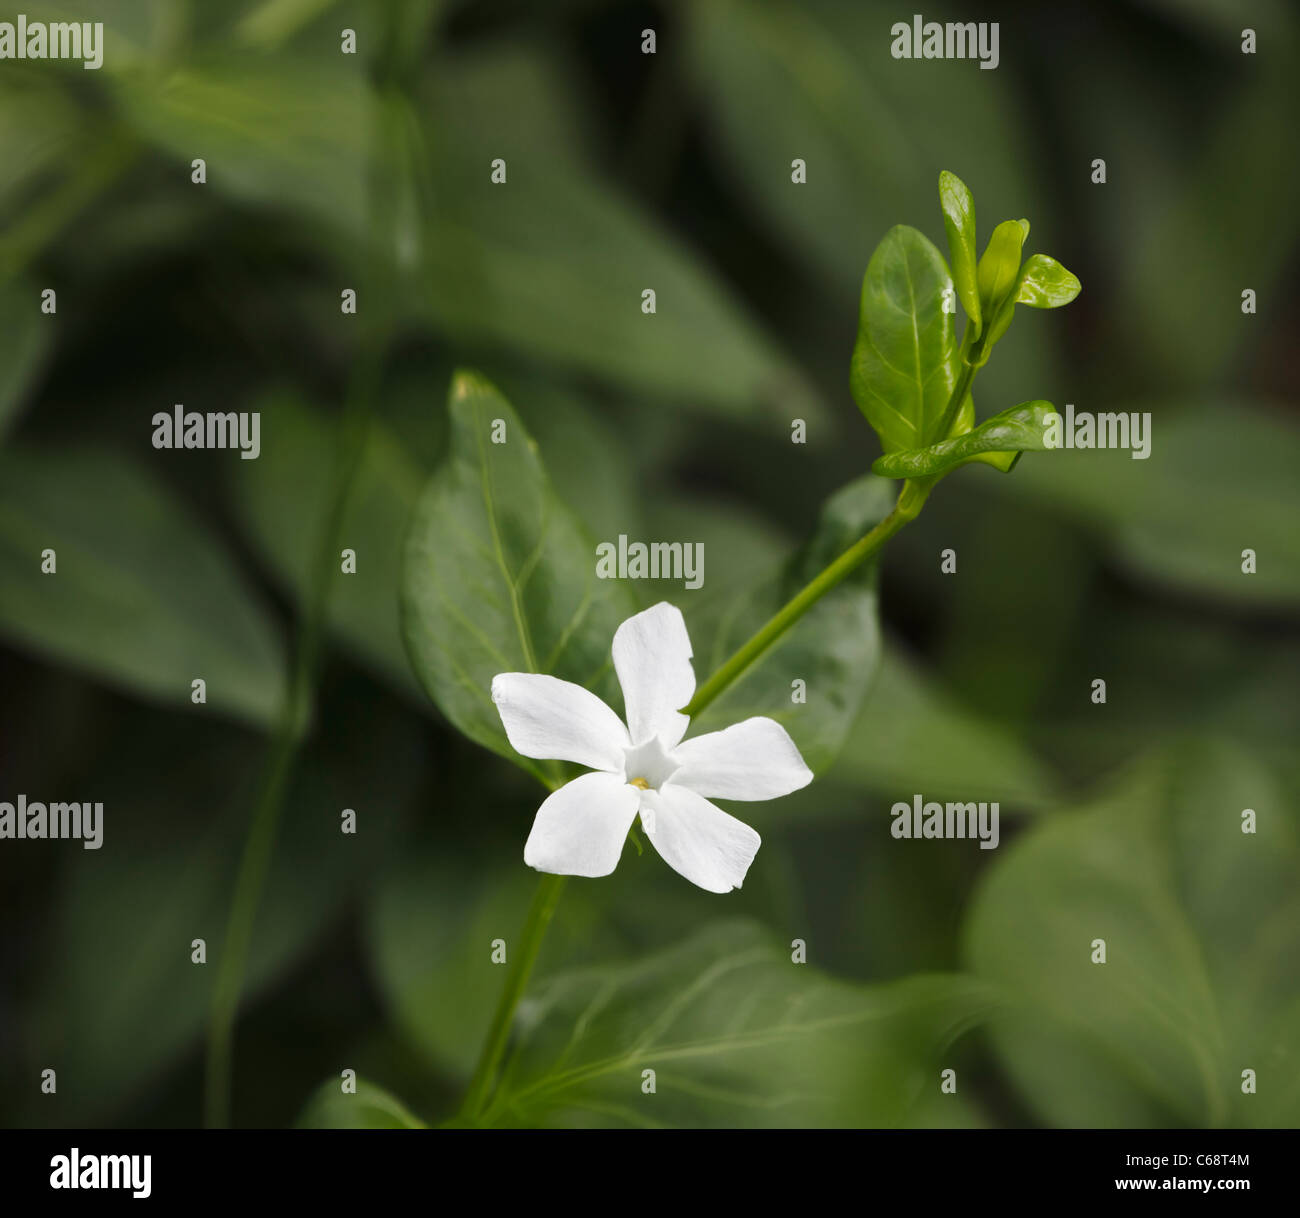 Single white wildflower amongst forest greenery. - Stock Image